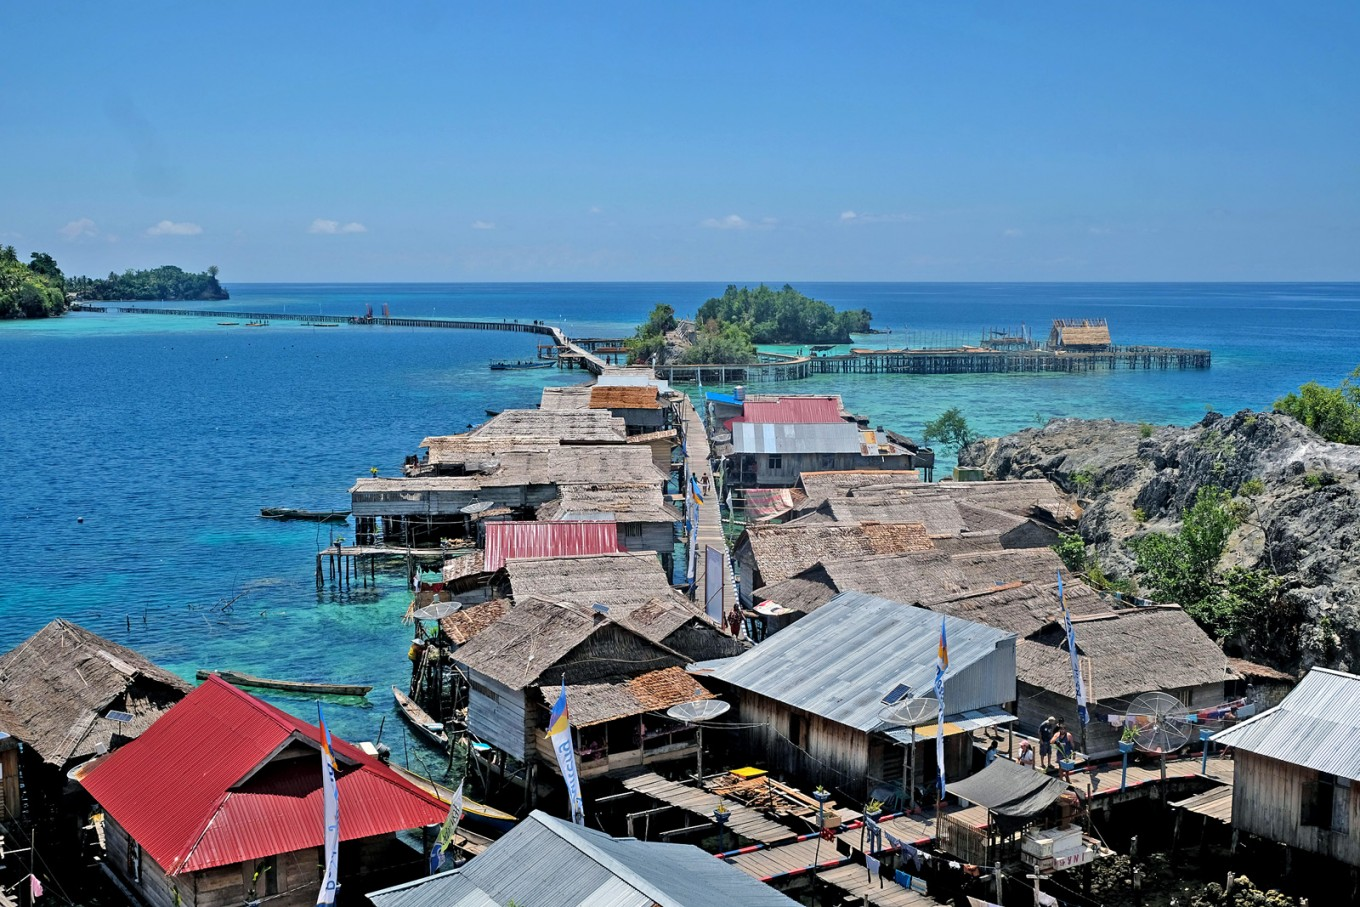 An aerial view of Bajo village, Papan Island.